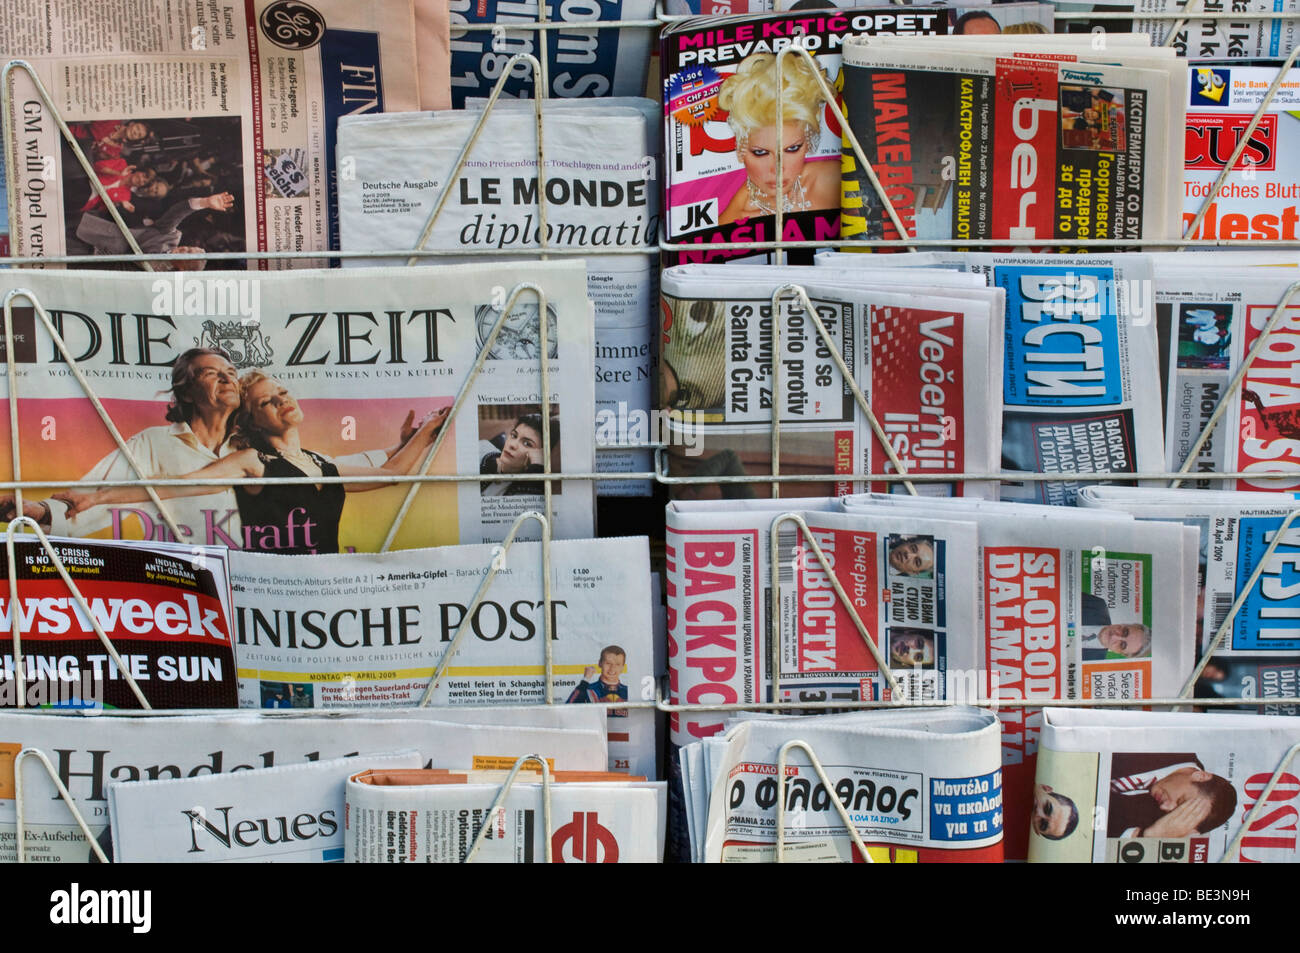 Newspaper stand, German and foreign newspapers - Stock Image